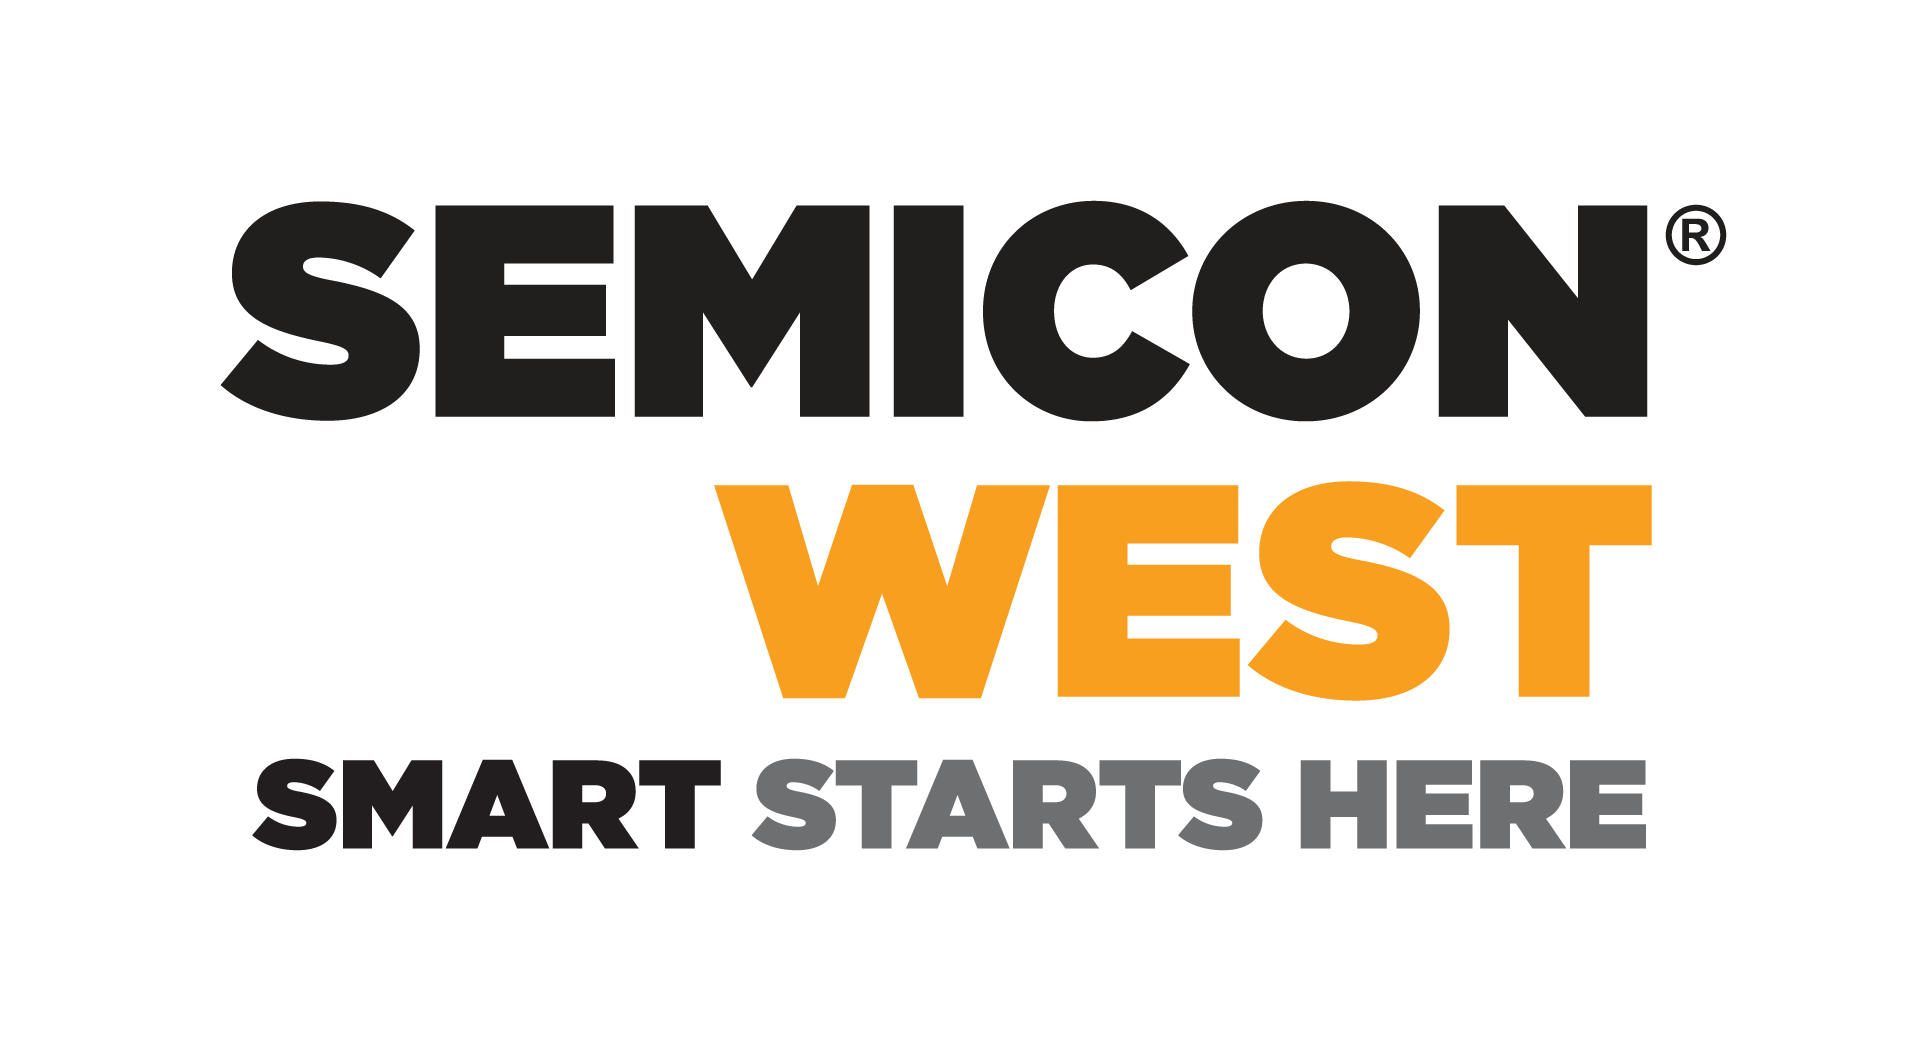 SEMICON West_Stacked_SSH_COLOR.png